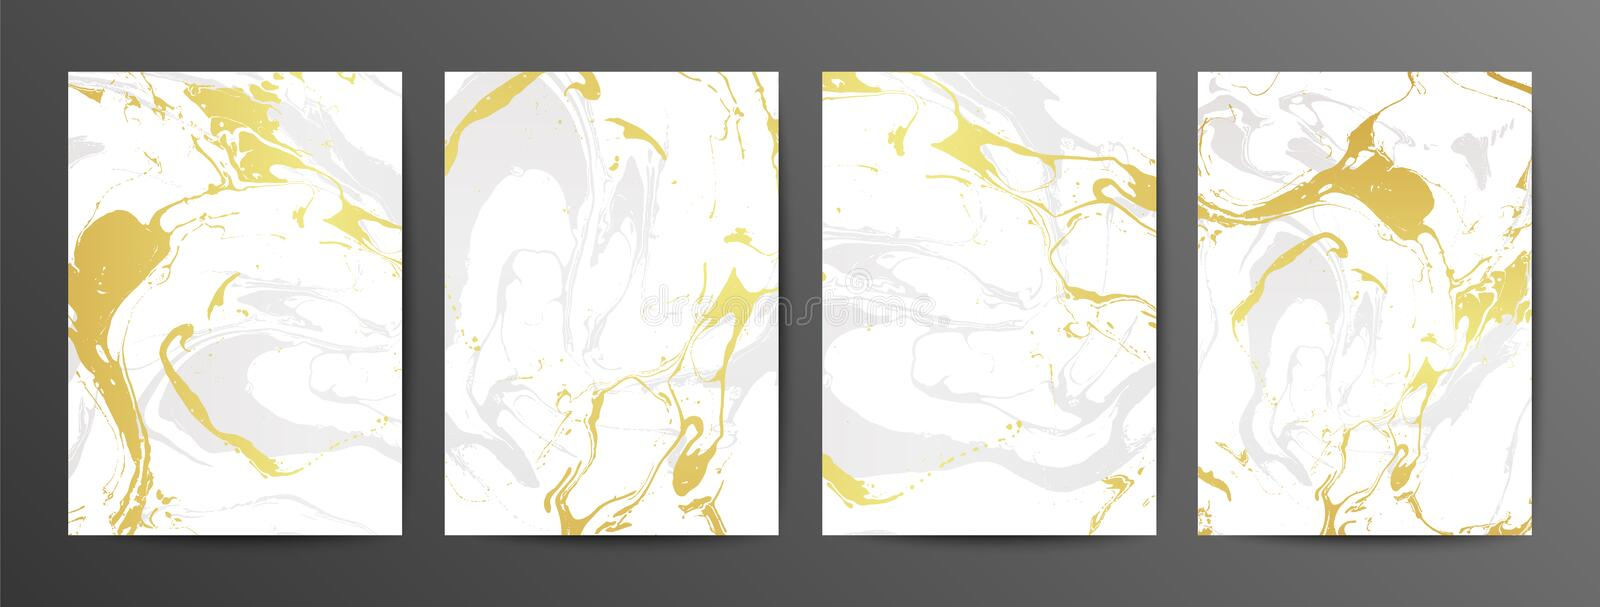 Set of creative gray and gold marble cards. Vector hand Drawn textures made with liquid ink. stock illustration